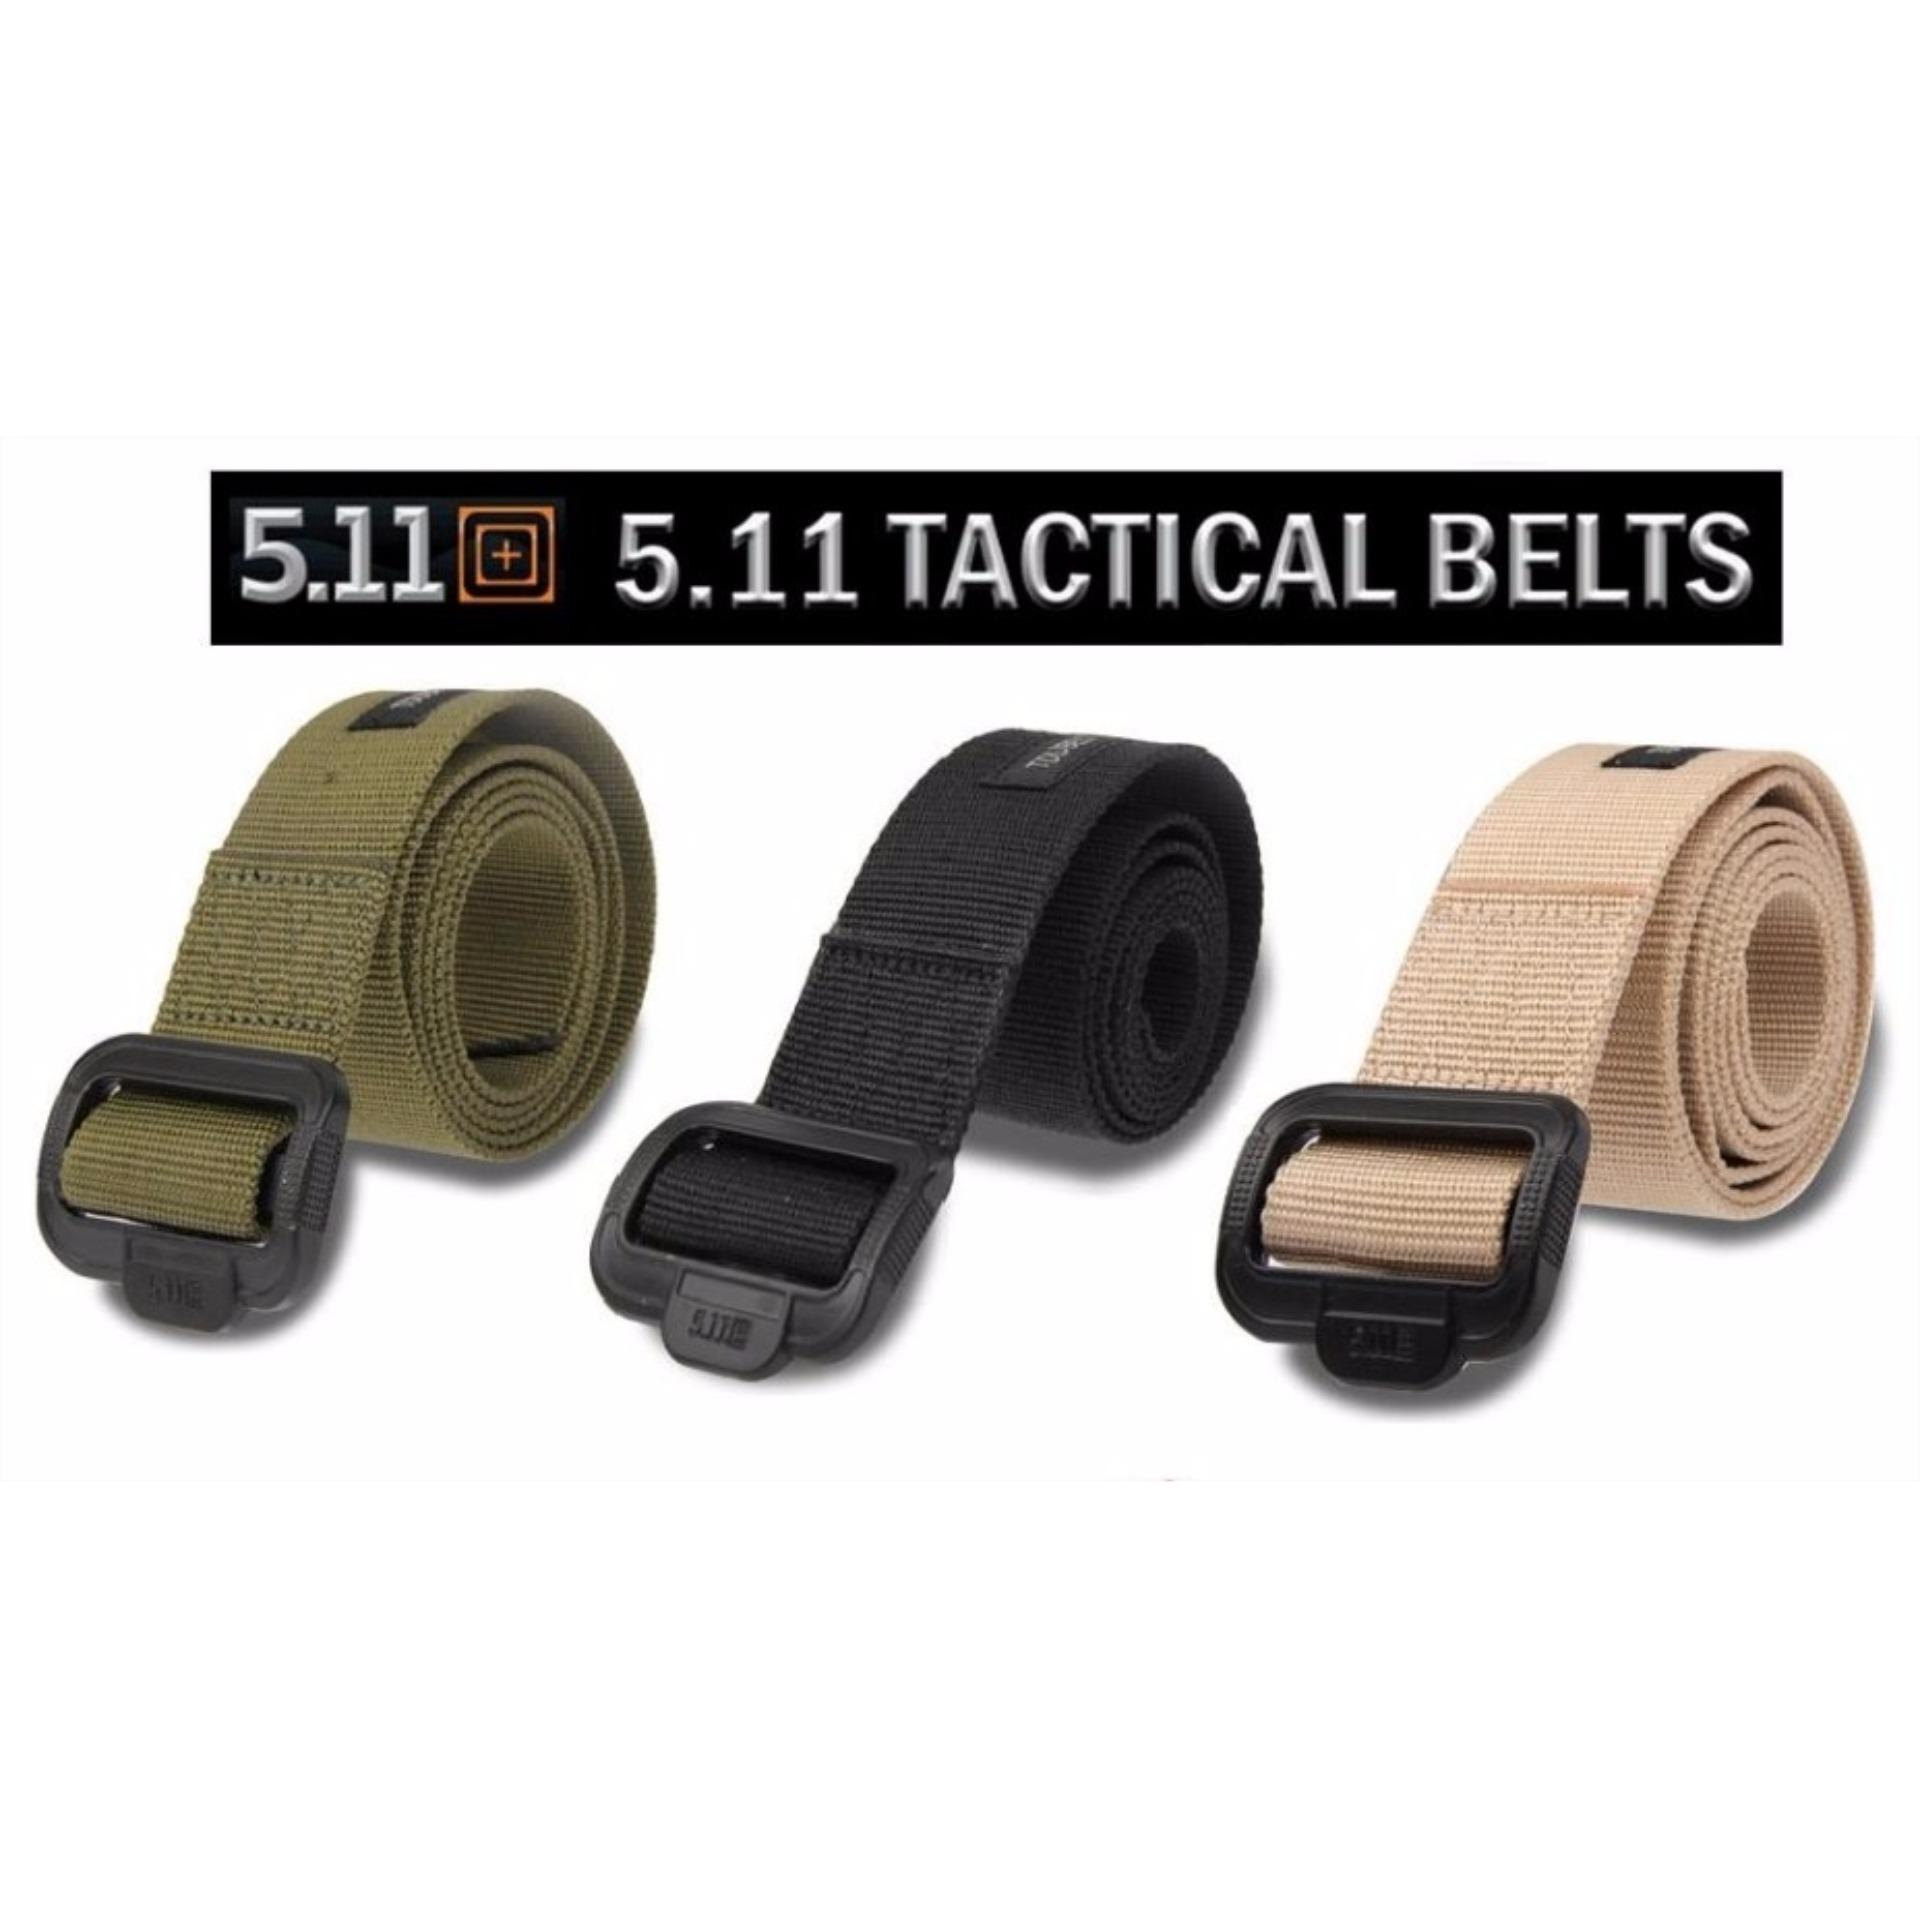 Harga Belt Tactical Series 511 Branded